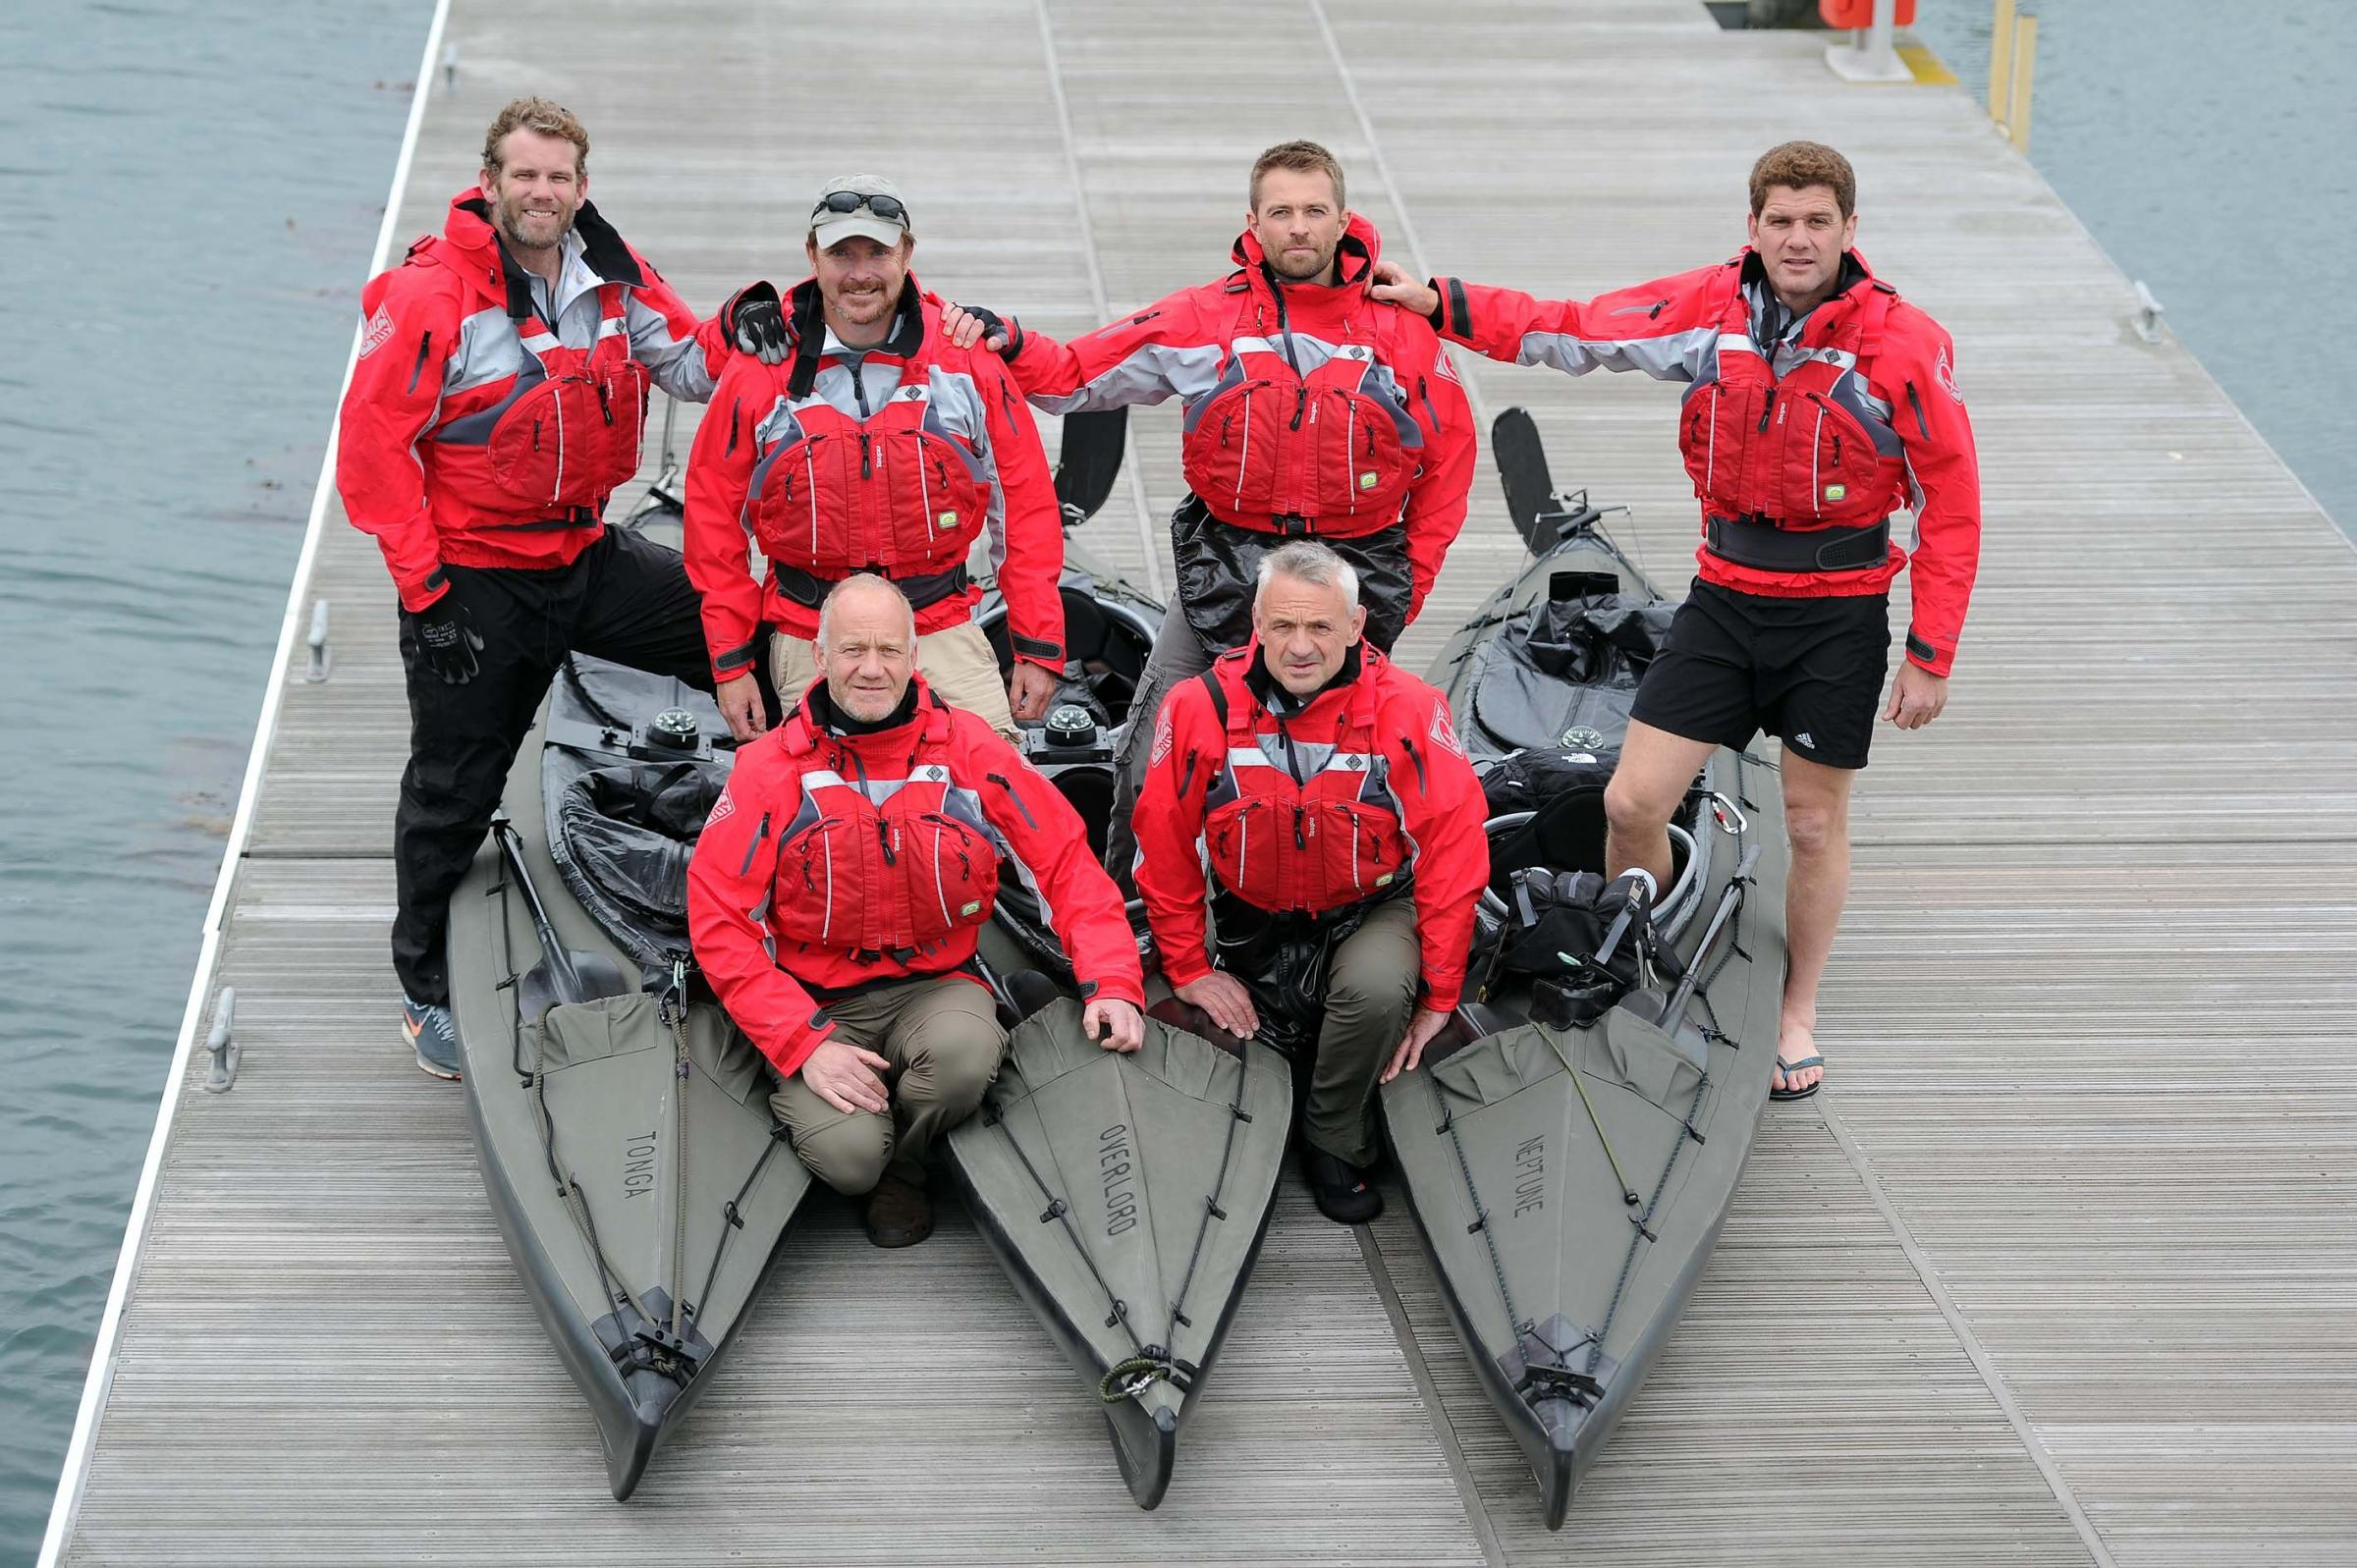 D-Day canoeists set for cross-Channel voyage